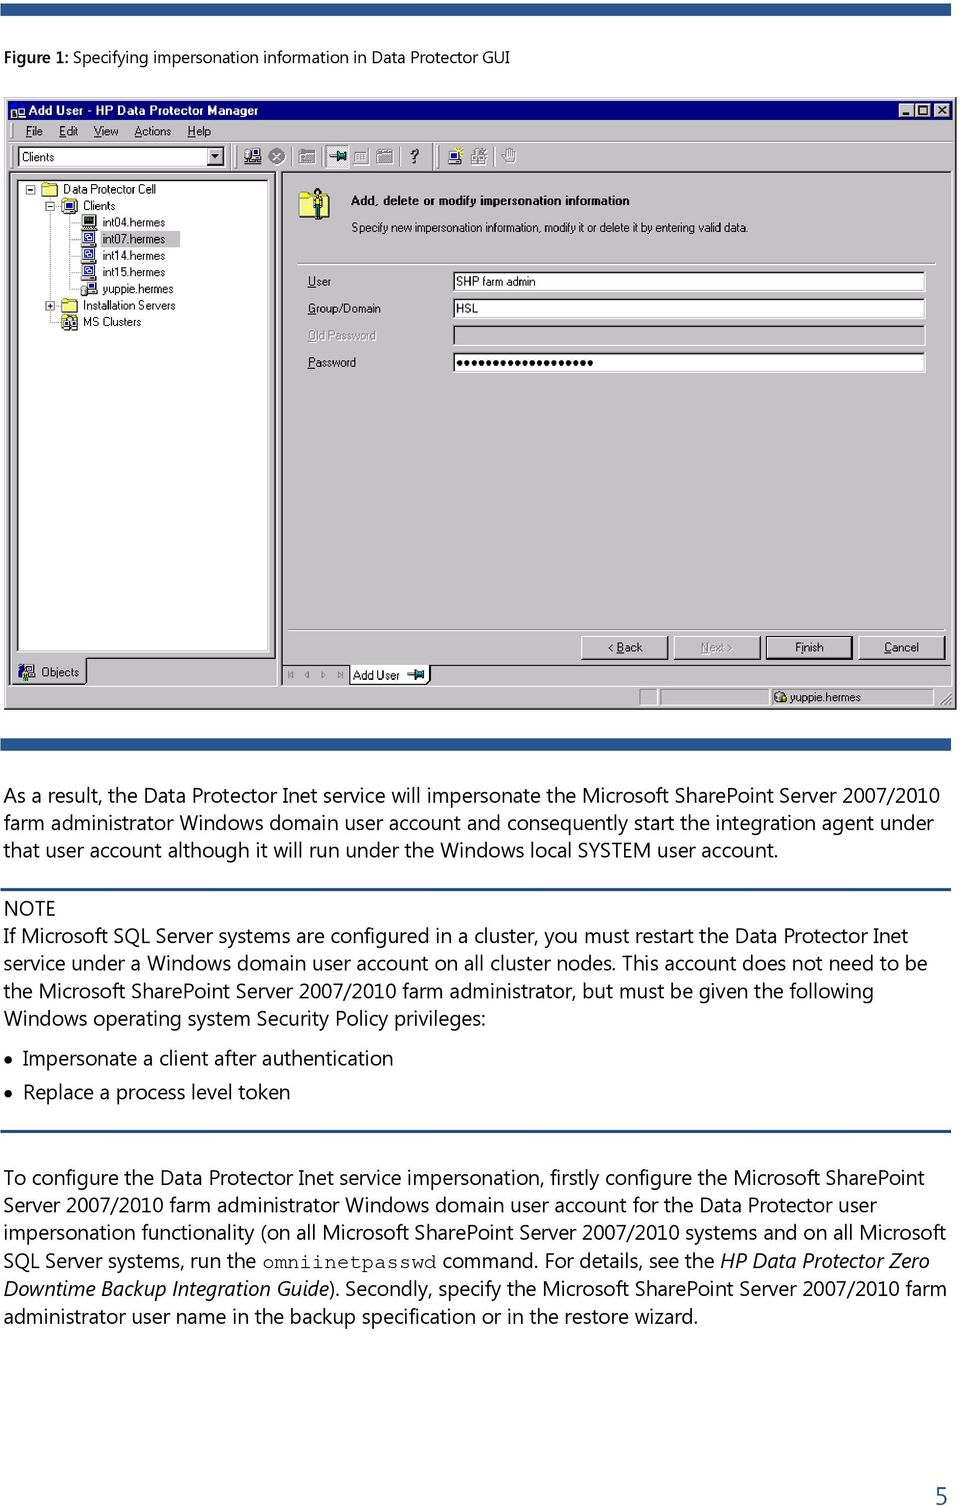 NOTE If Microsoft SQL Server systems are configured in a cluster, you must  restart the